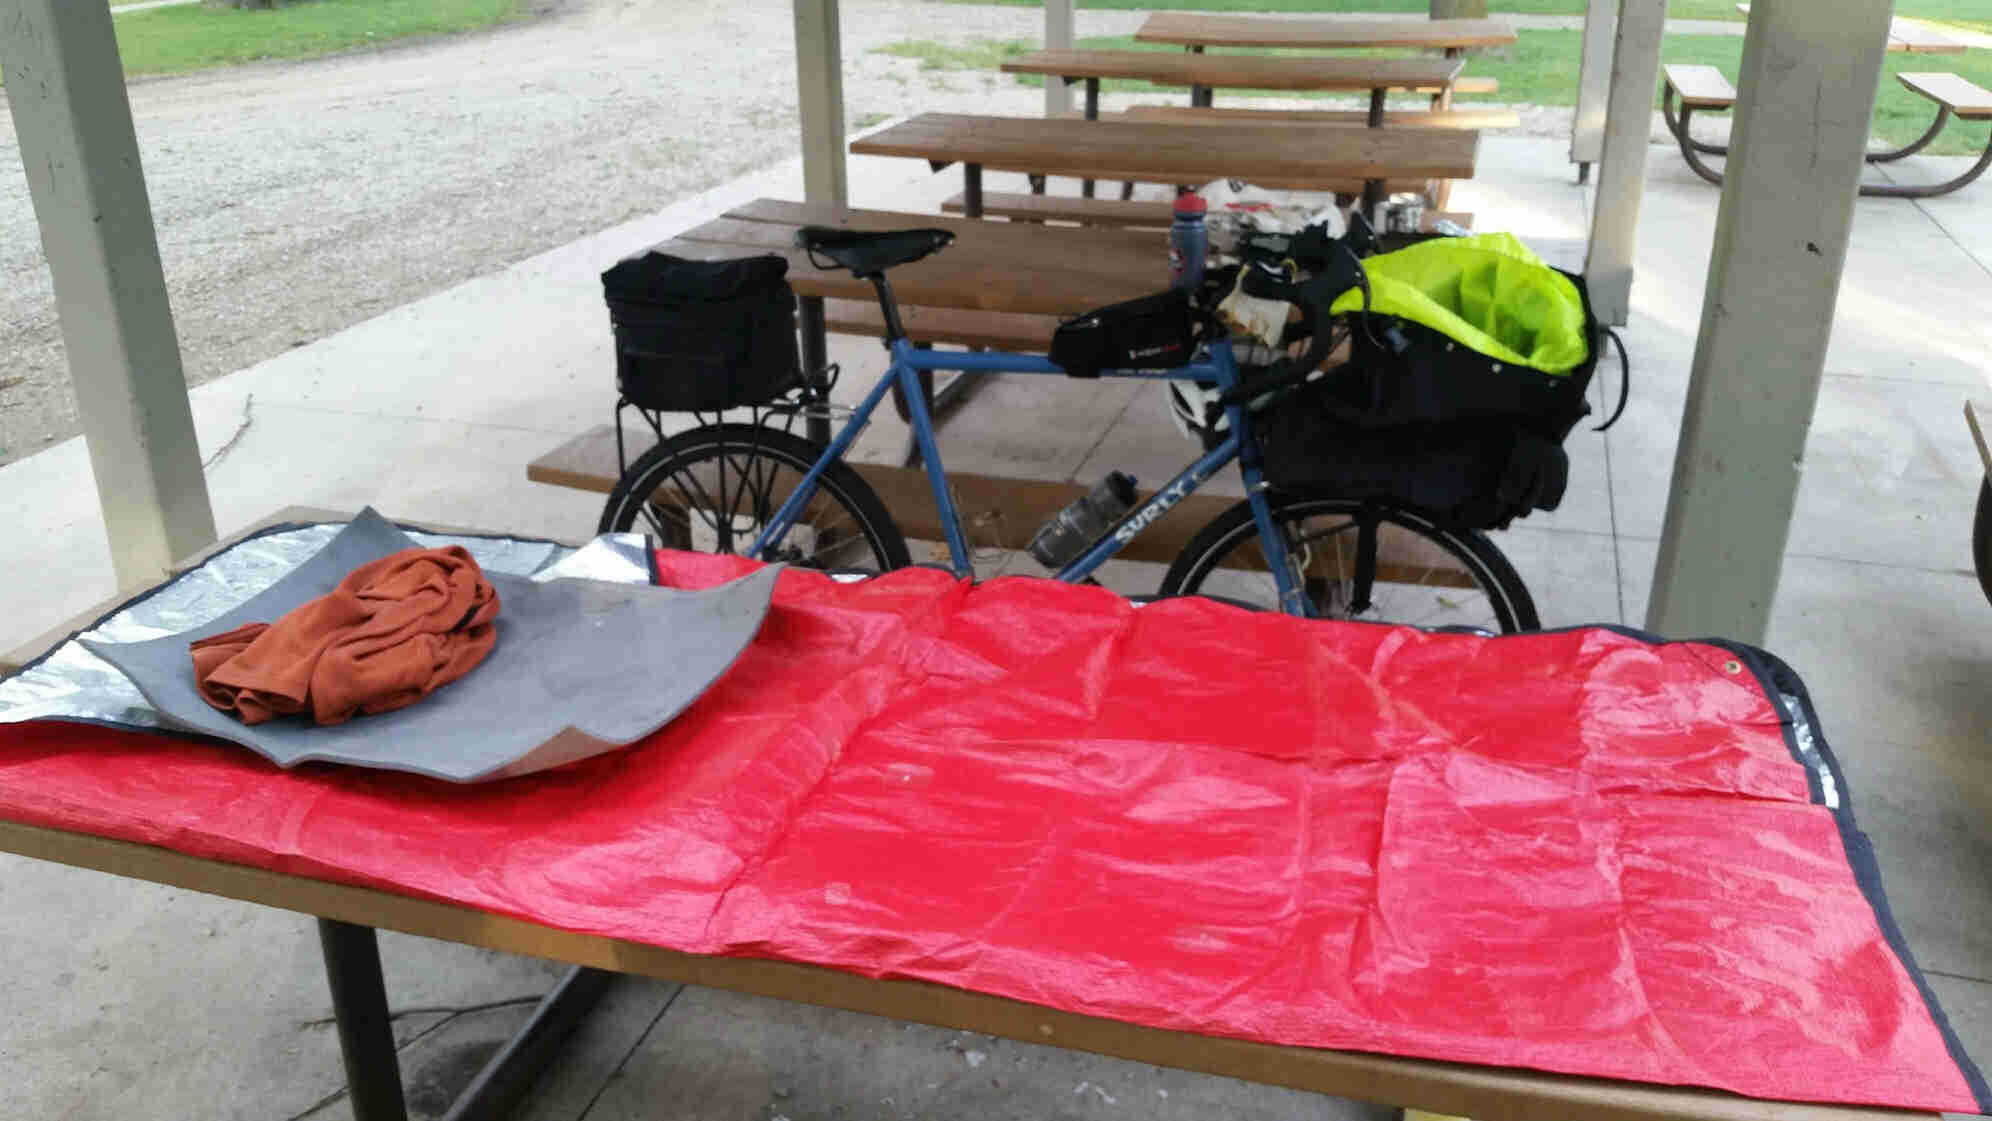 Red tarp laying across a picnic table, with a Surly bike behind it, and row of picnic tables in the background